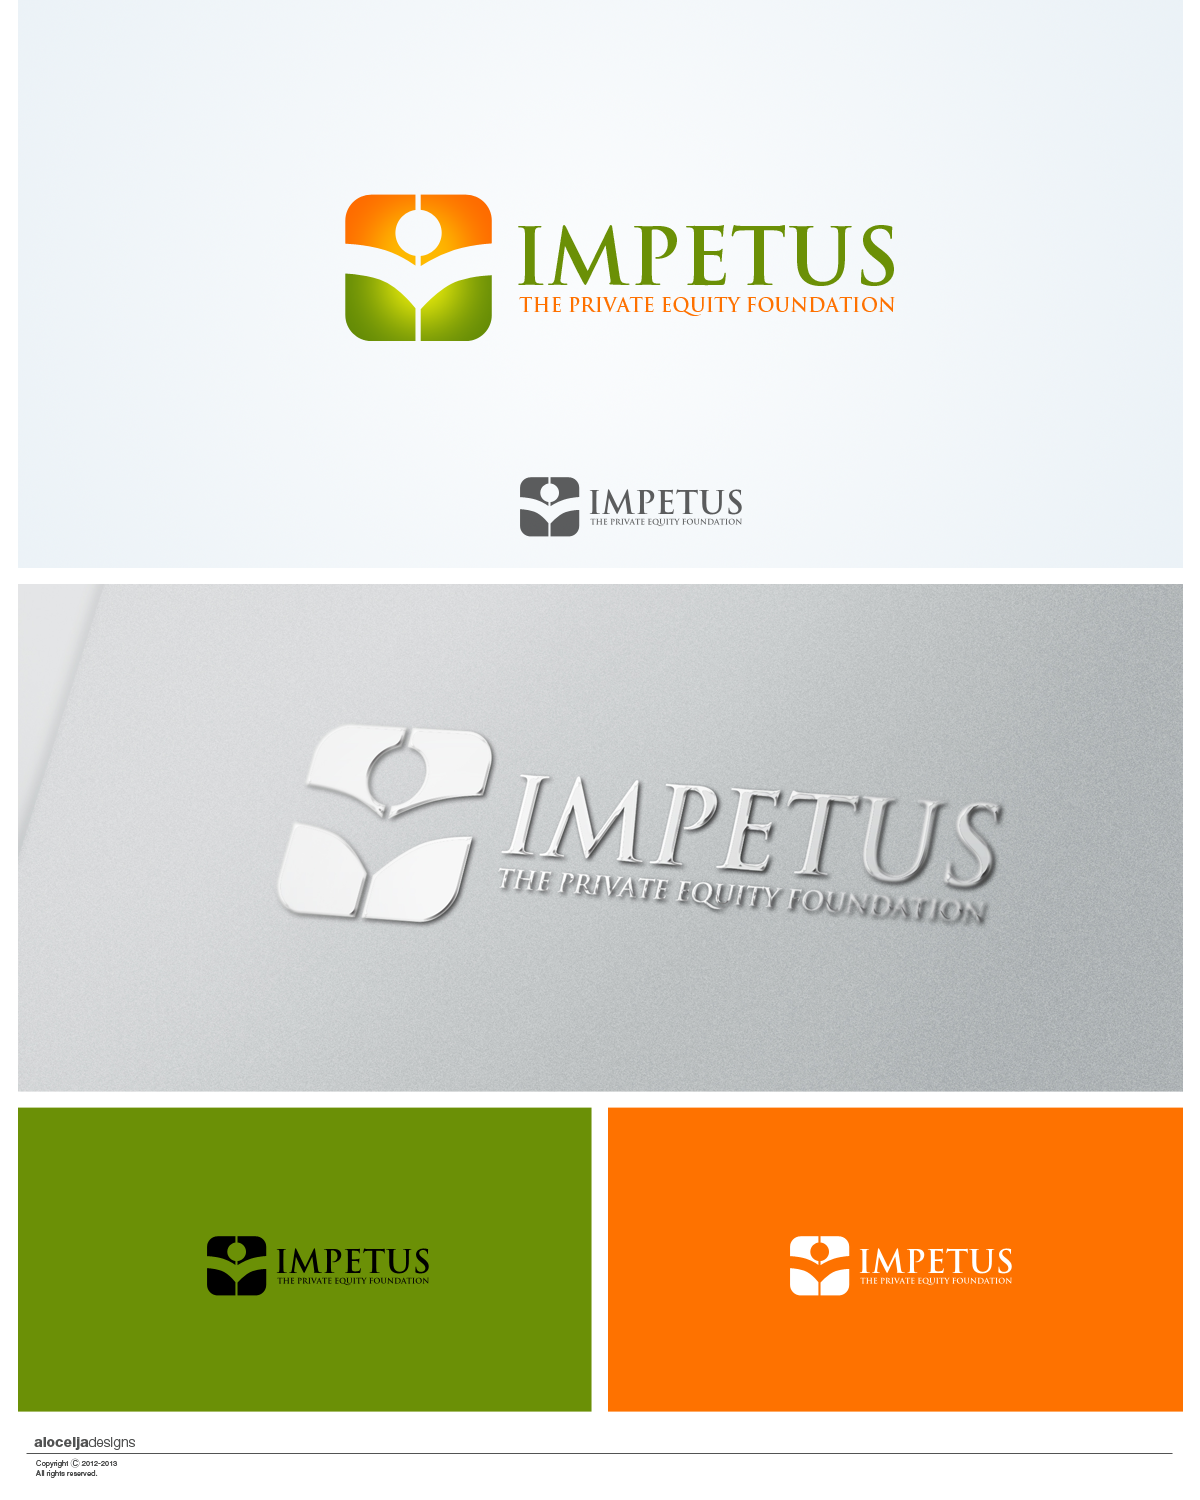 Logo Design by alocelja - Entry No. 31 in the Logo Design Contest New Logo Design for Impetus - The Private Equity Foundation.